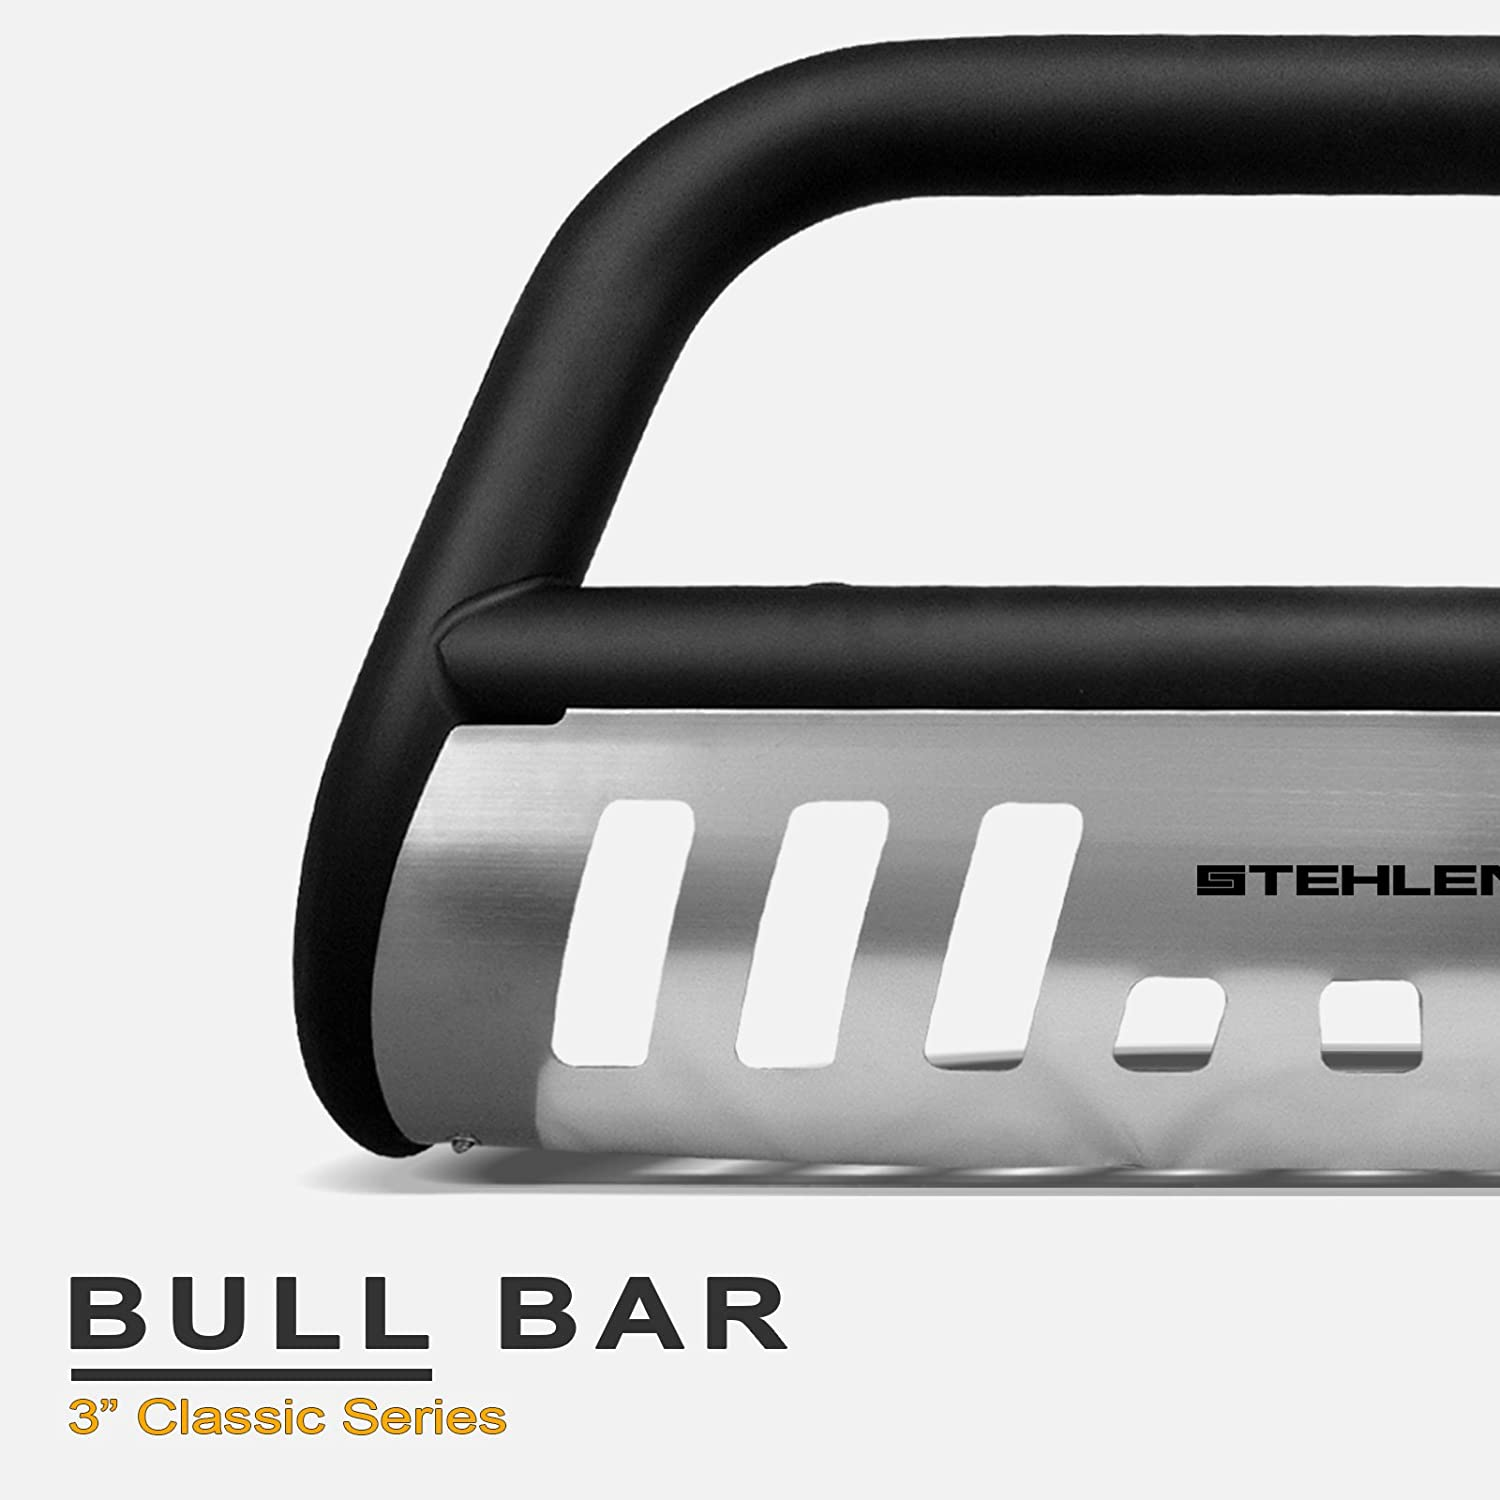 Polished Stainless Steel For 06-08 Dodge Ram 1500//06-09 2500//3500 08-09 4500 5500 Stehlen 714937182080 3 Classic Series Bull Bar